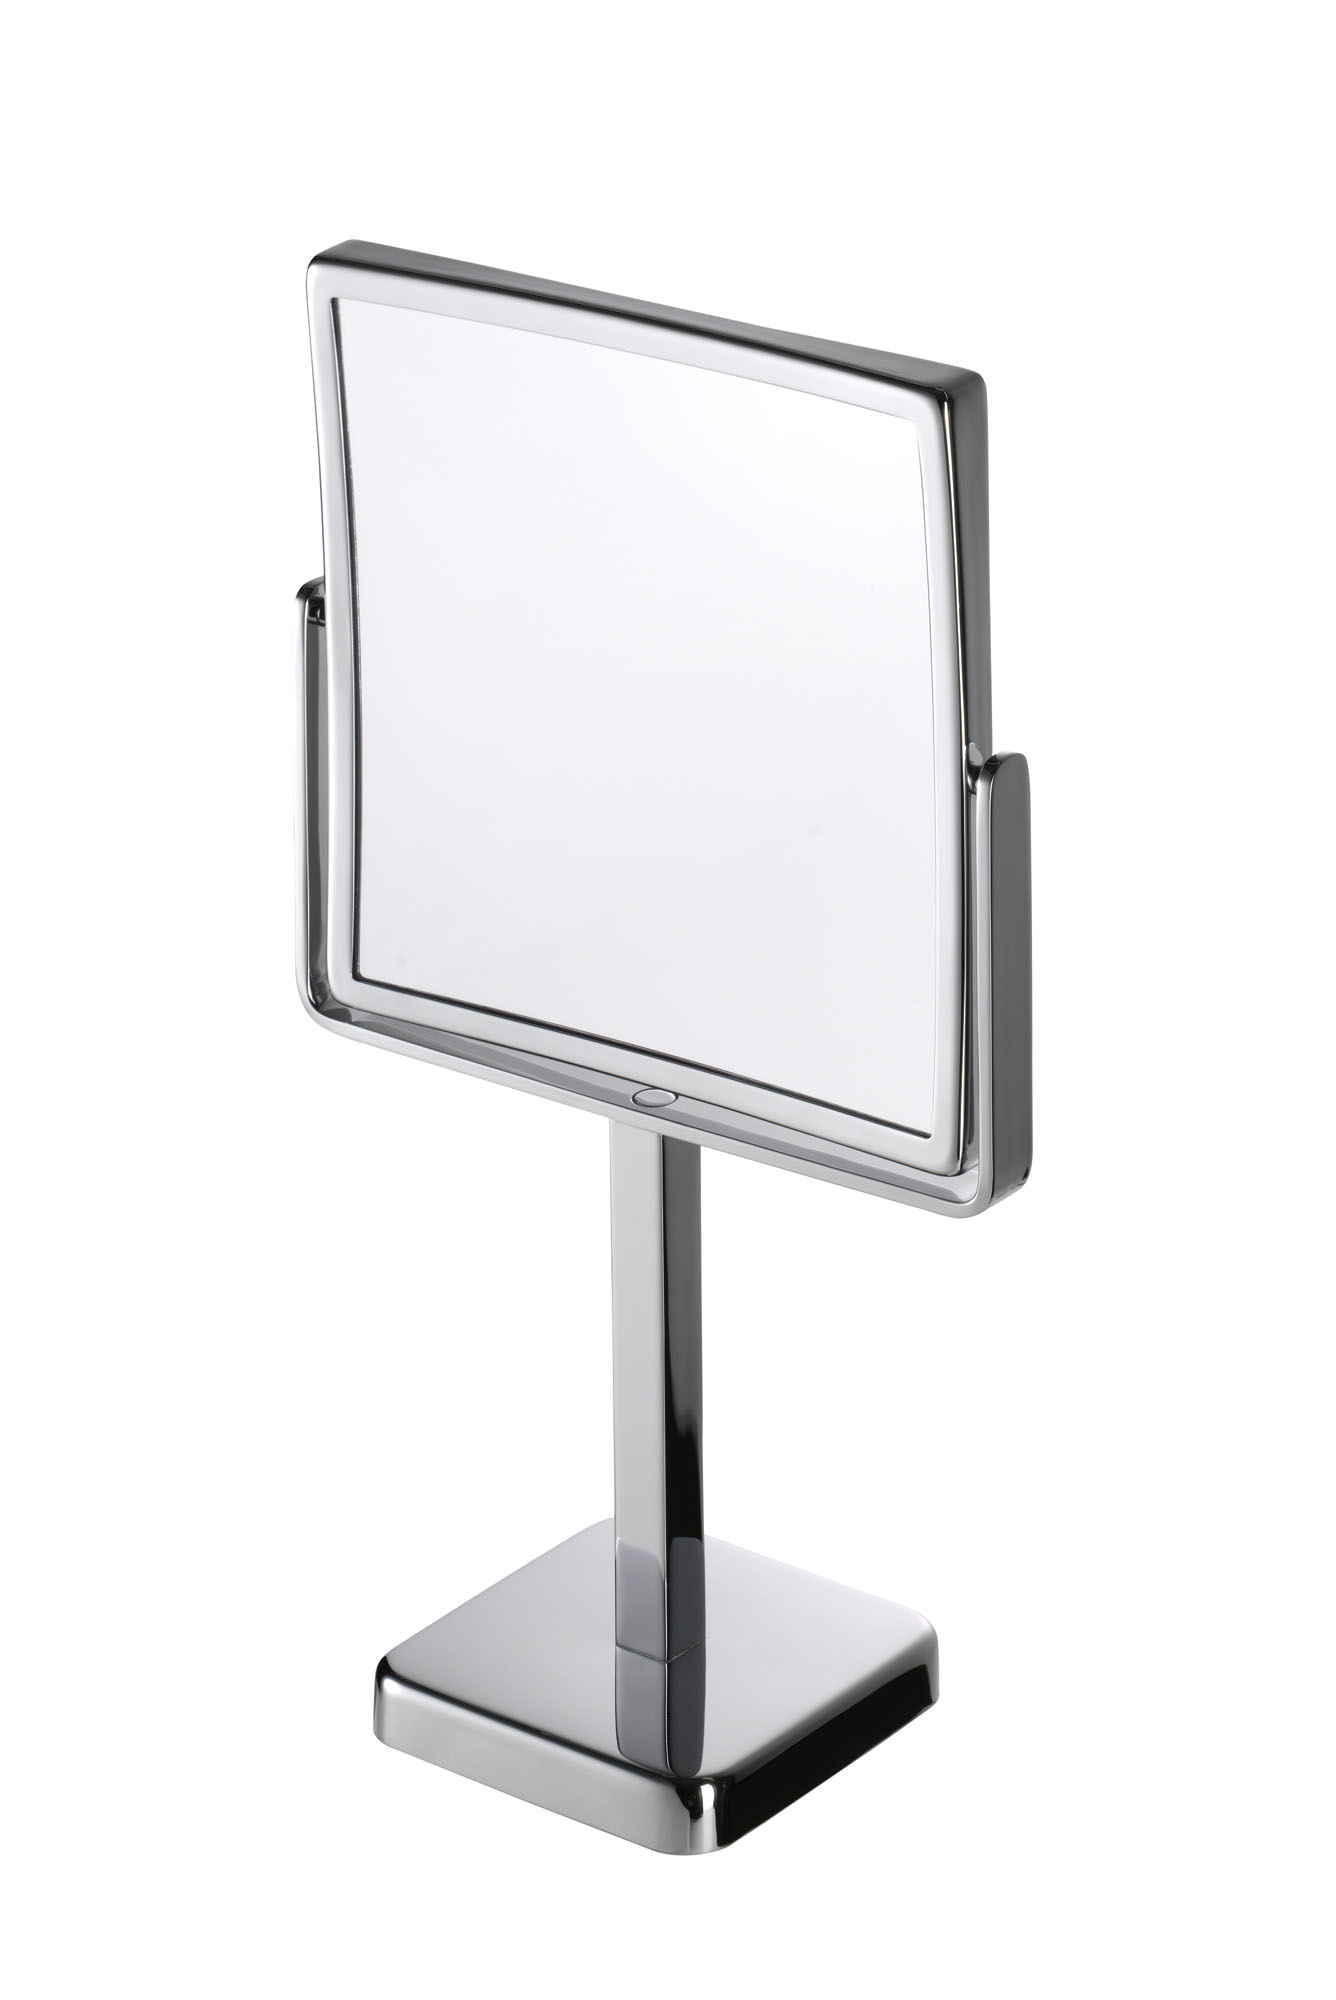 Specchi cosmetici ingranditori illuminati led forniture - Specchi ingranditori illuminati ...